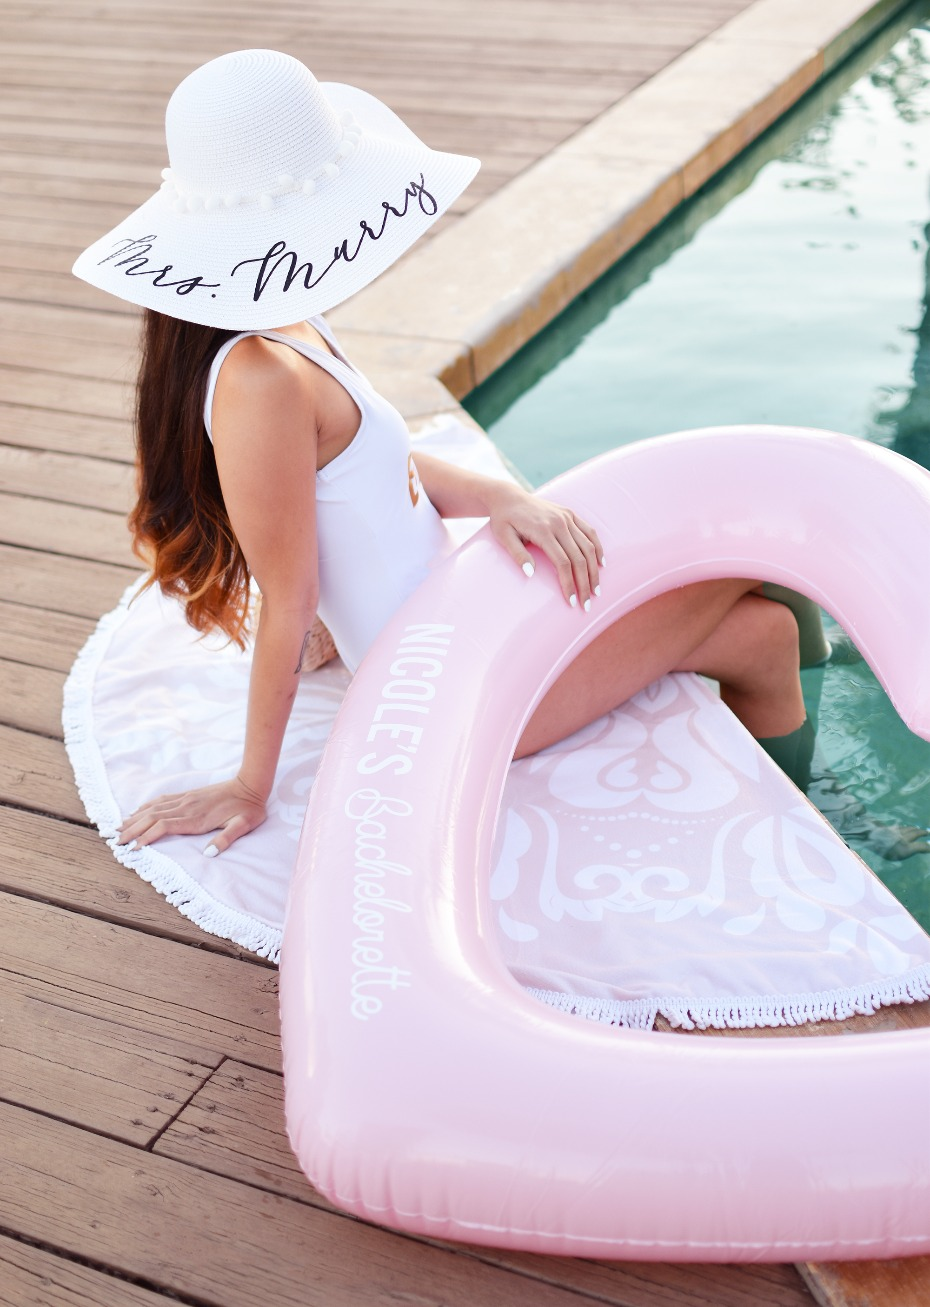 Bachelorettes Can Still Be the Absolute Best as a Backyard Bash